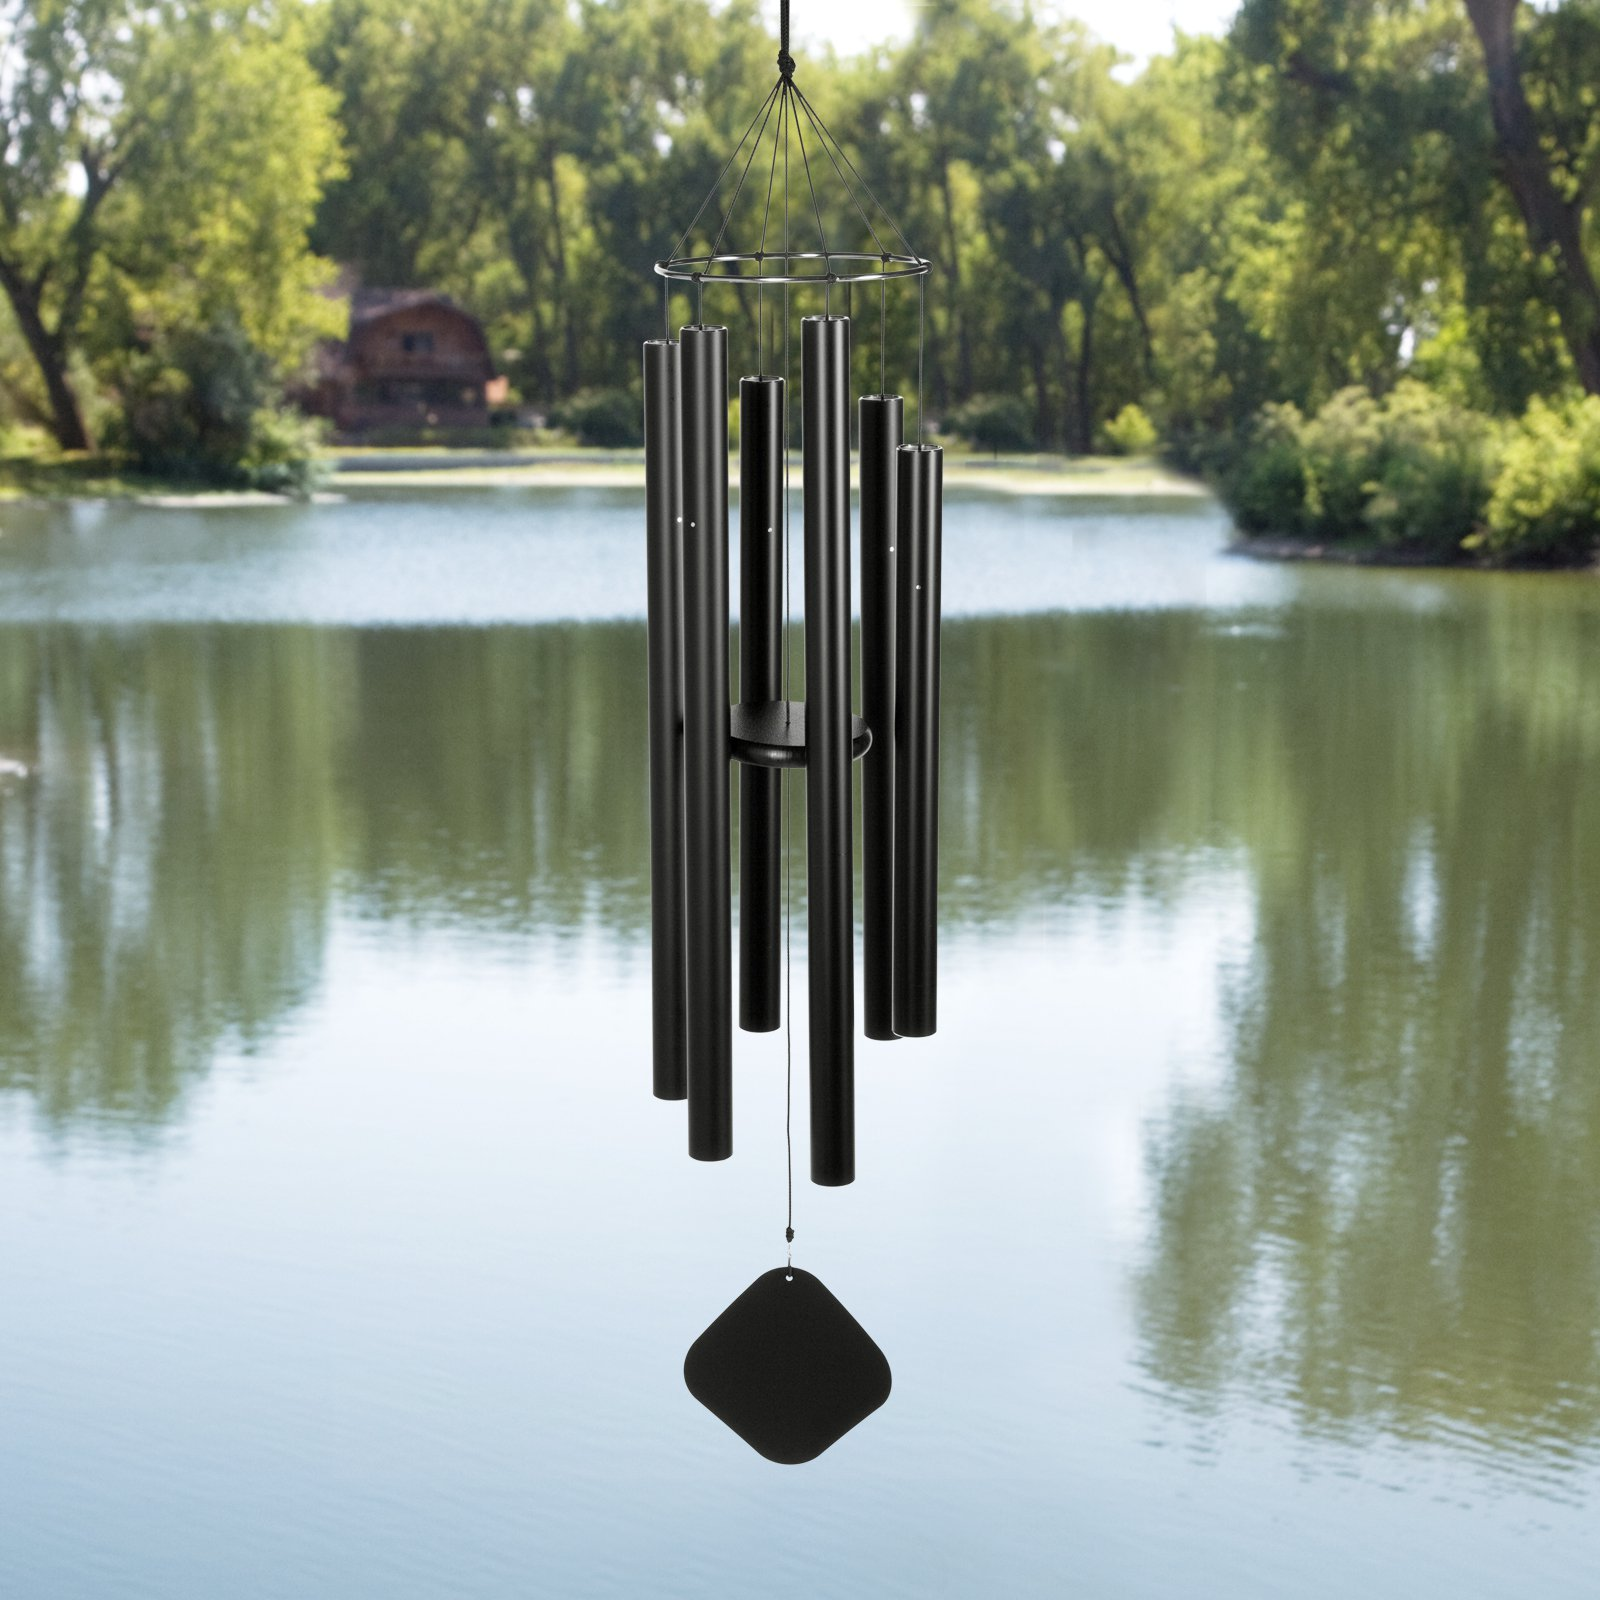 Music of the Spheres Mongolian Alto 50 Inch Wind Chime by Music of the Spheres Inc